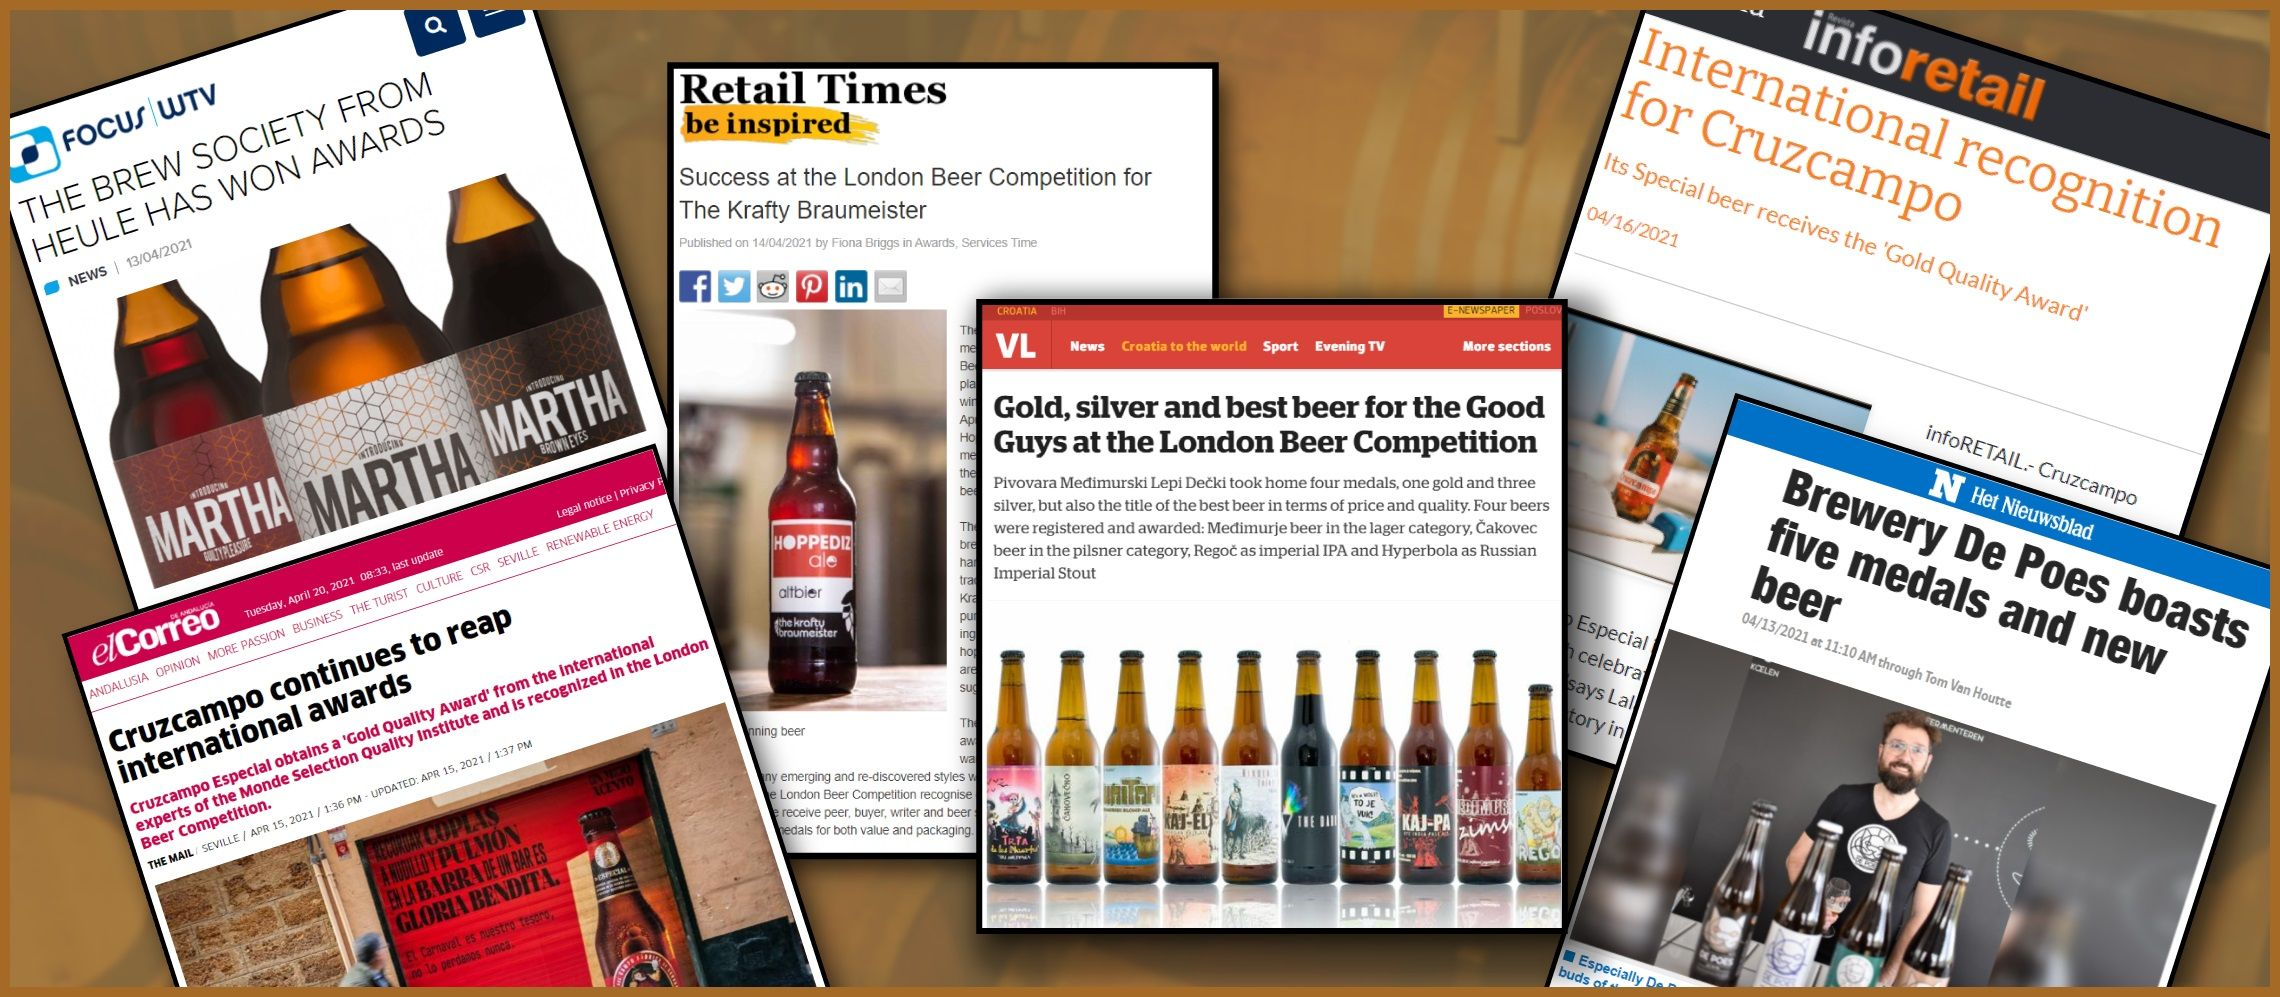 Photo for: London Beer Competition Winners Press Coverage